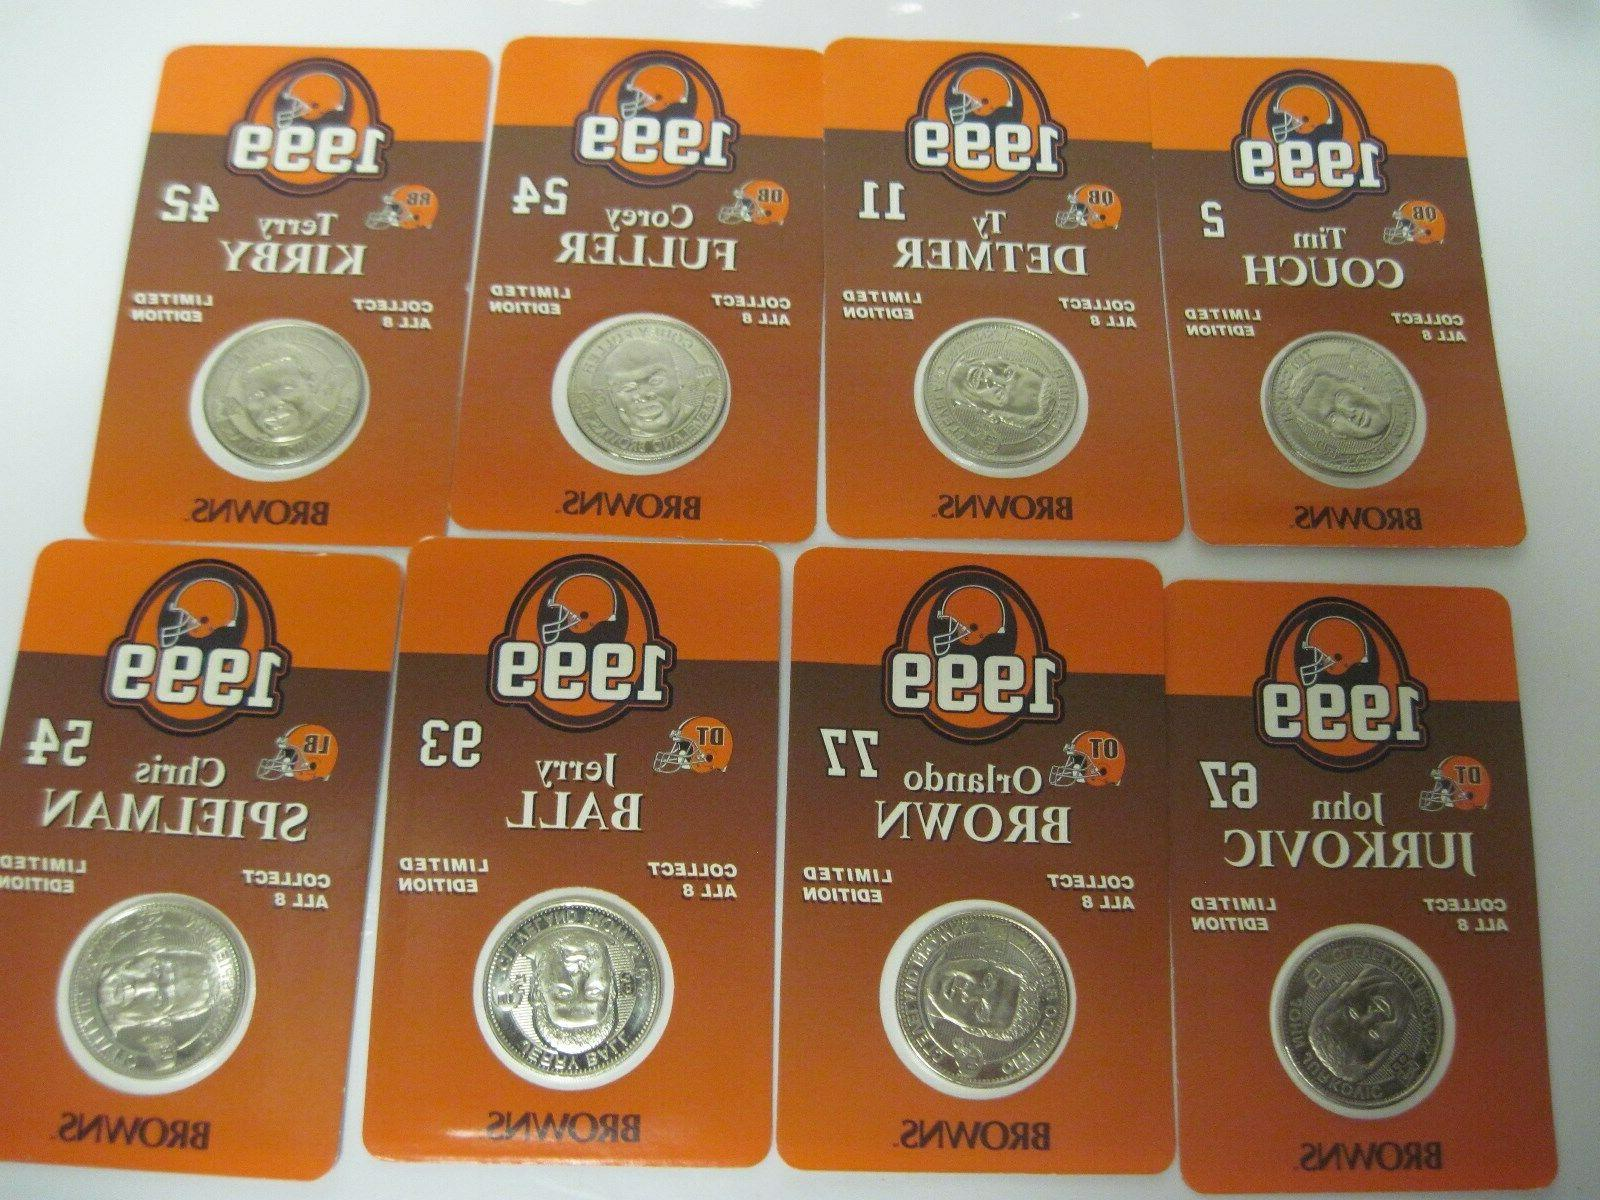 Cleveland Browns Set of 8 Collectible Giant Eagle